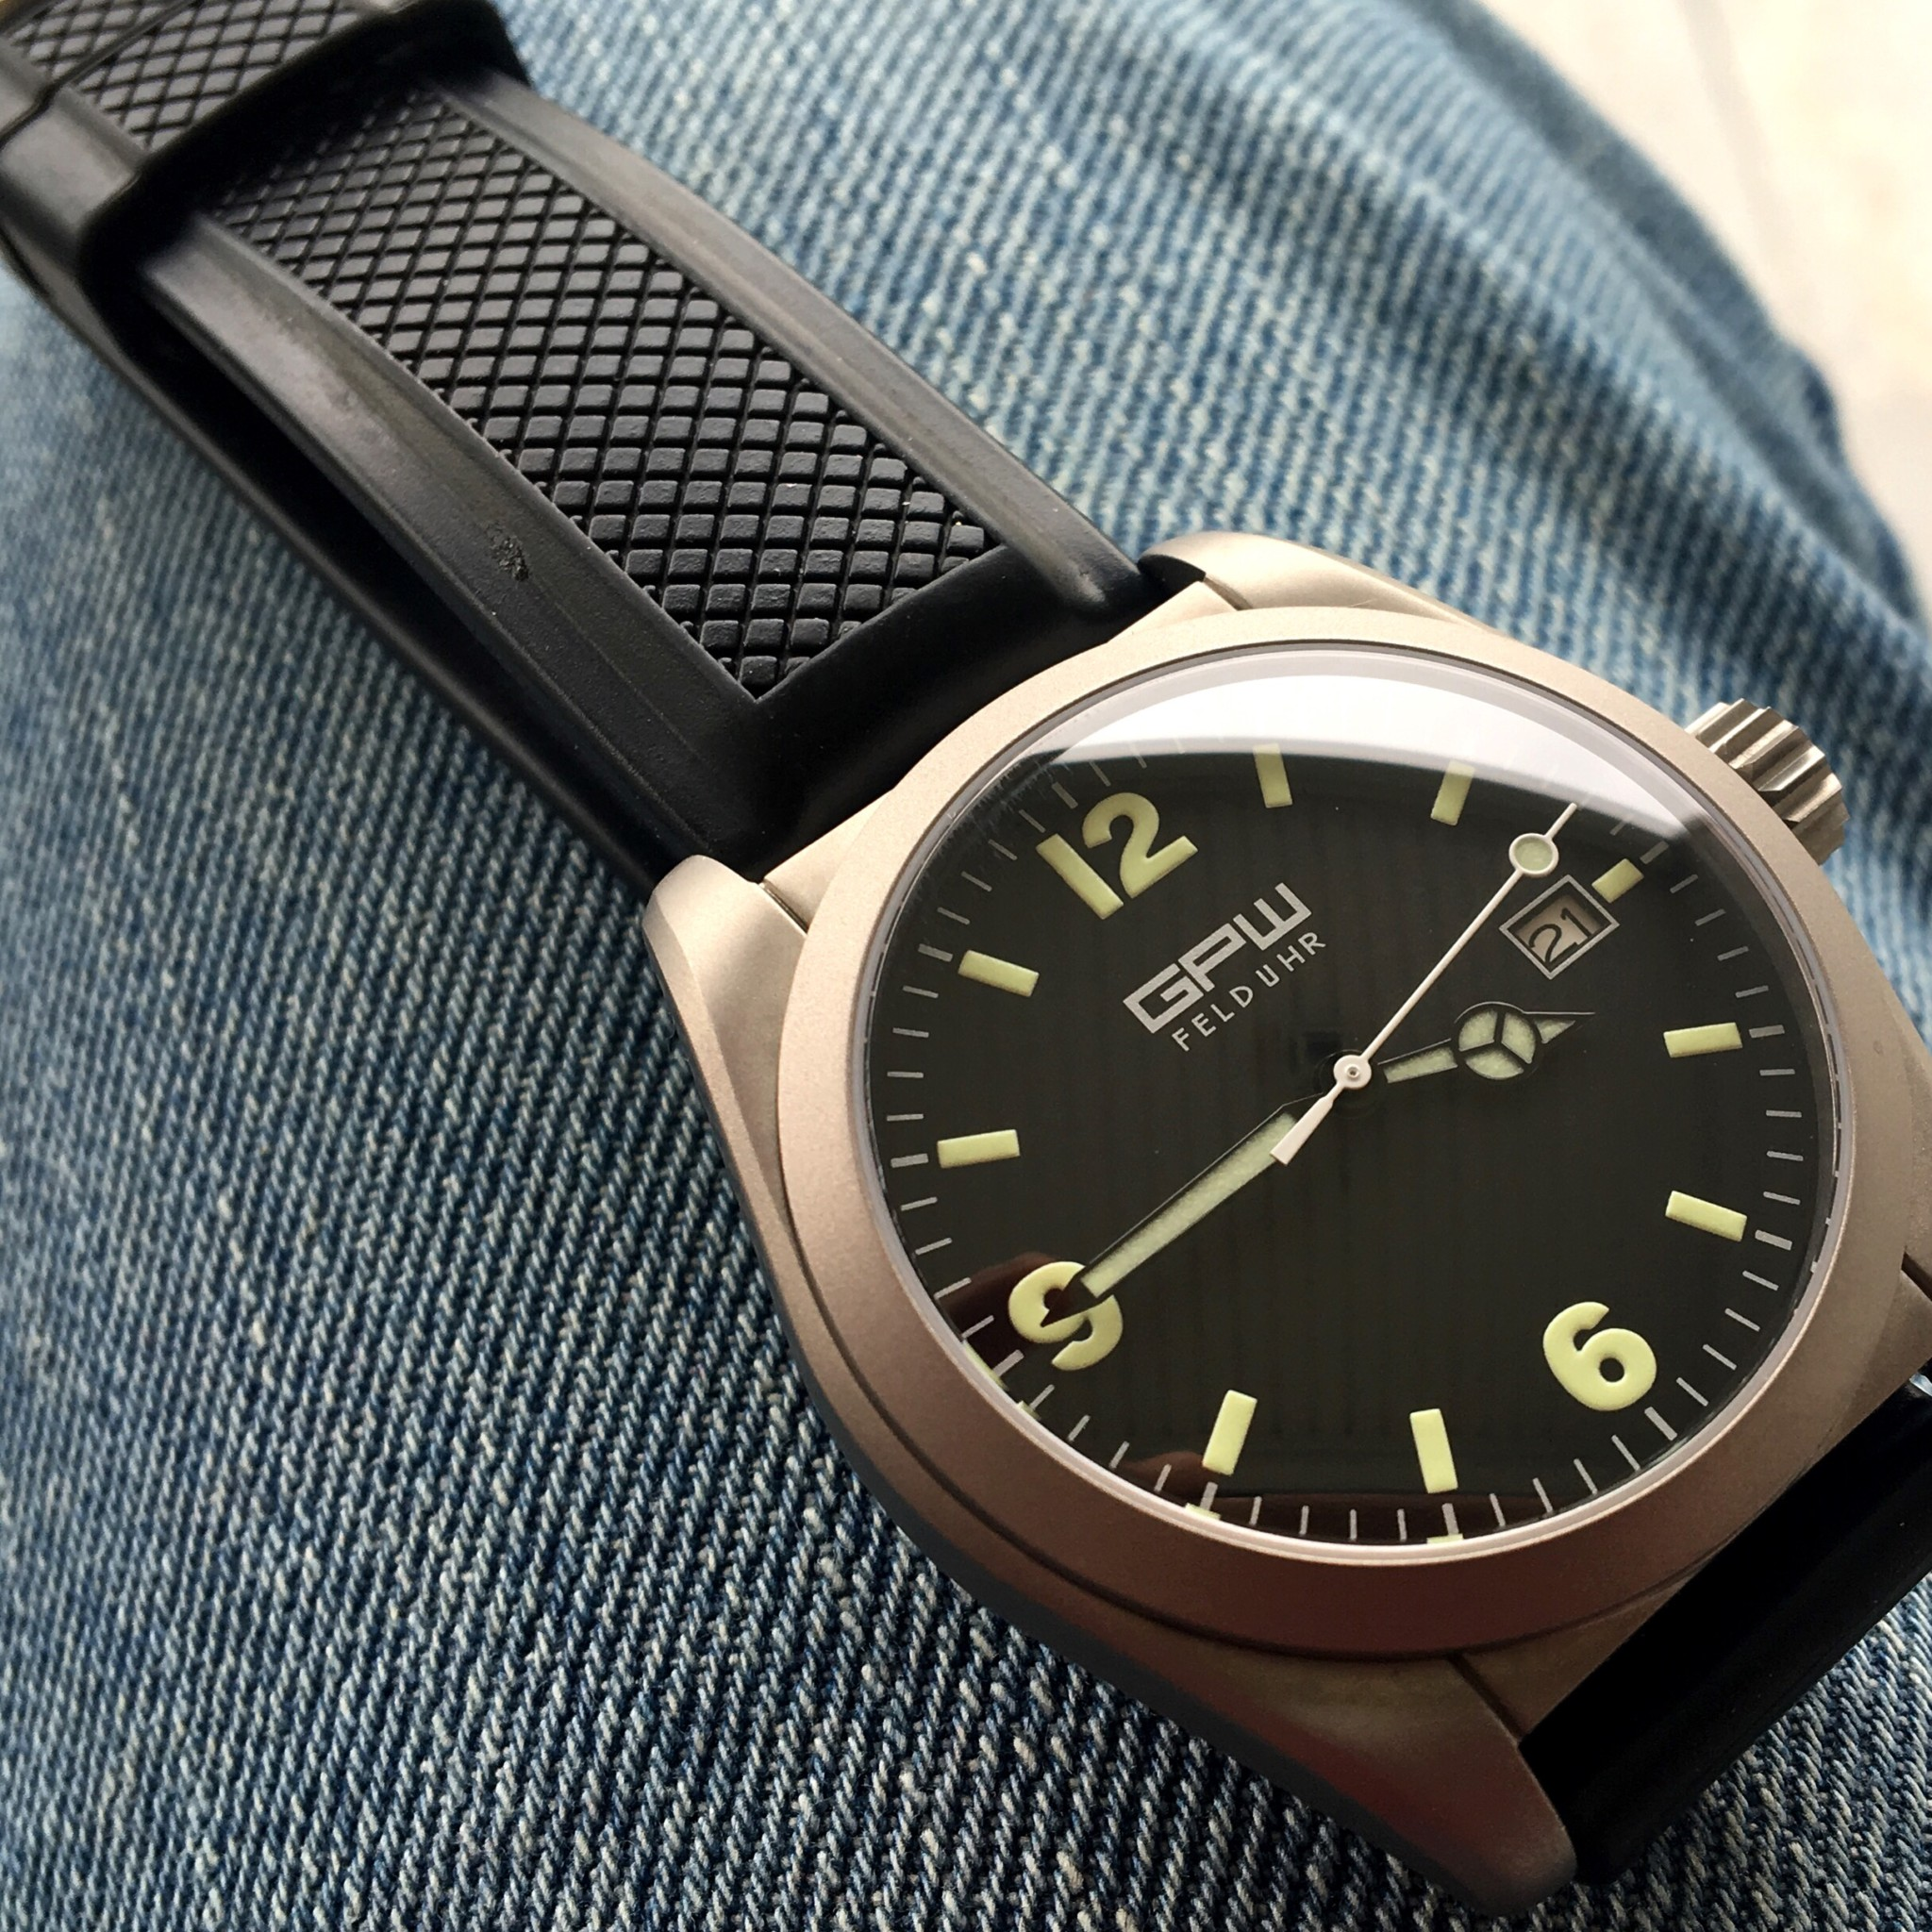 Gpw Field Model Watch Review Watchreport Com